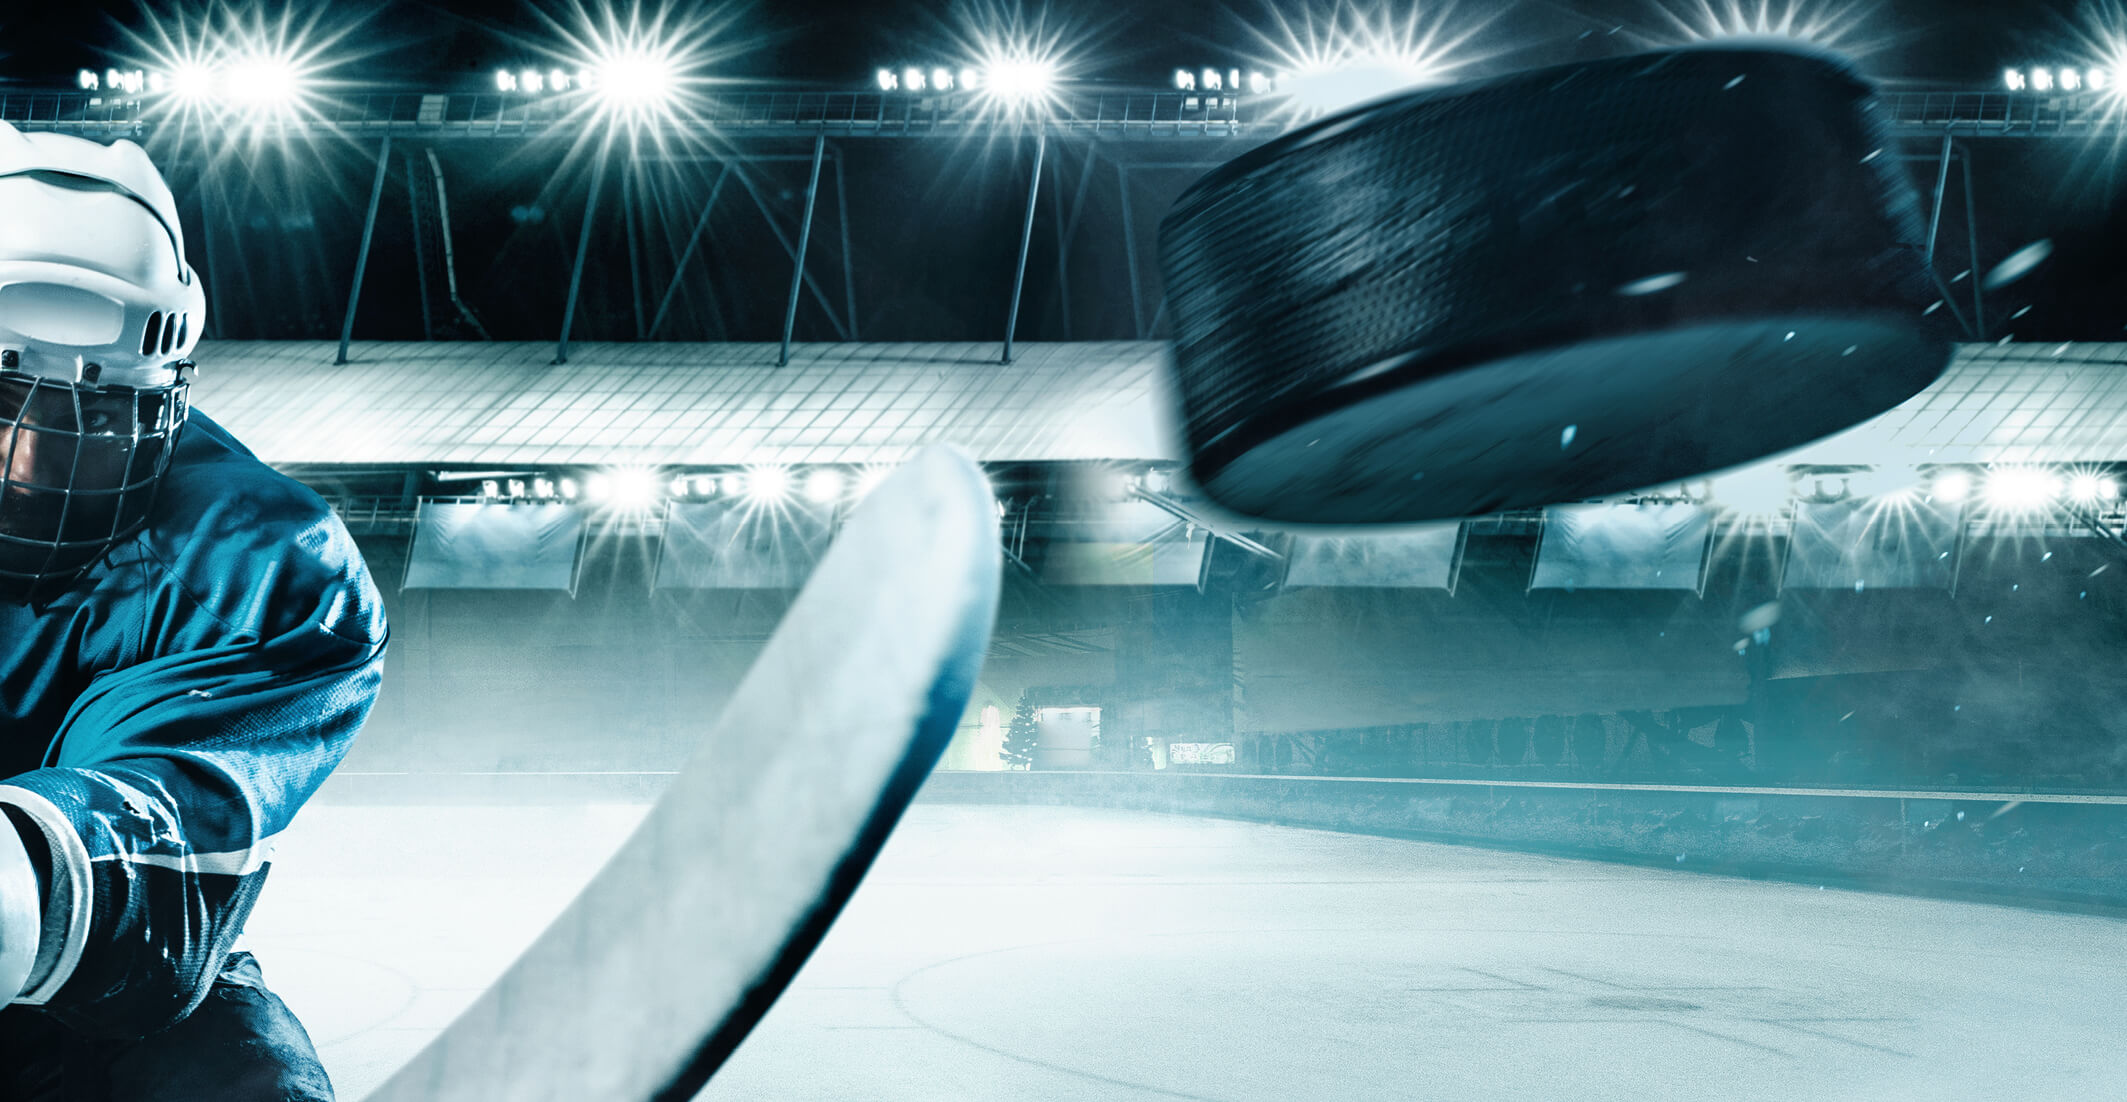 Is ice hockey more exciting to watch than football?